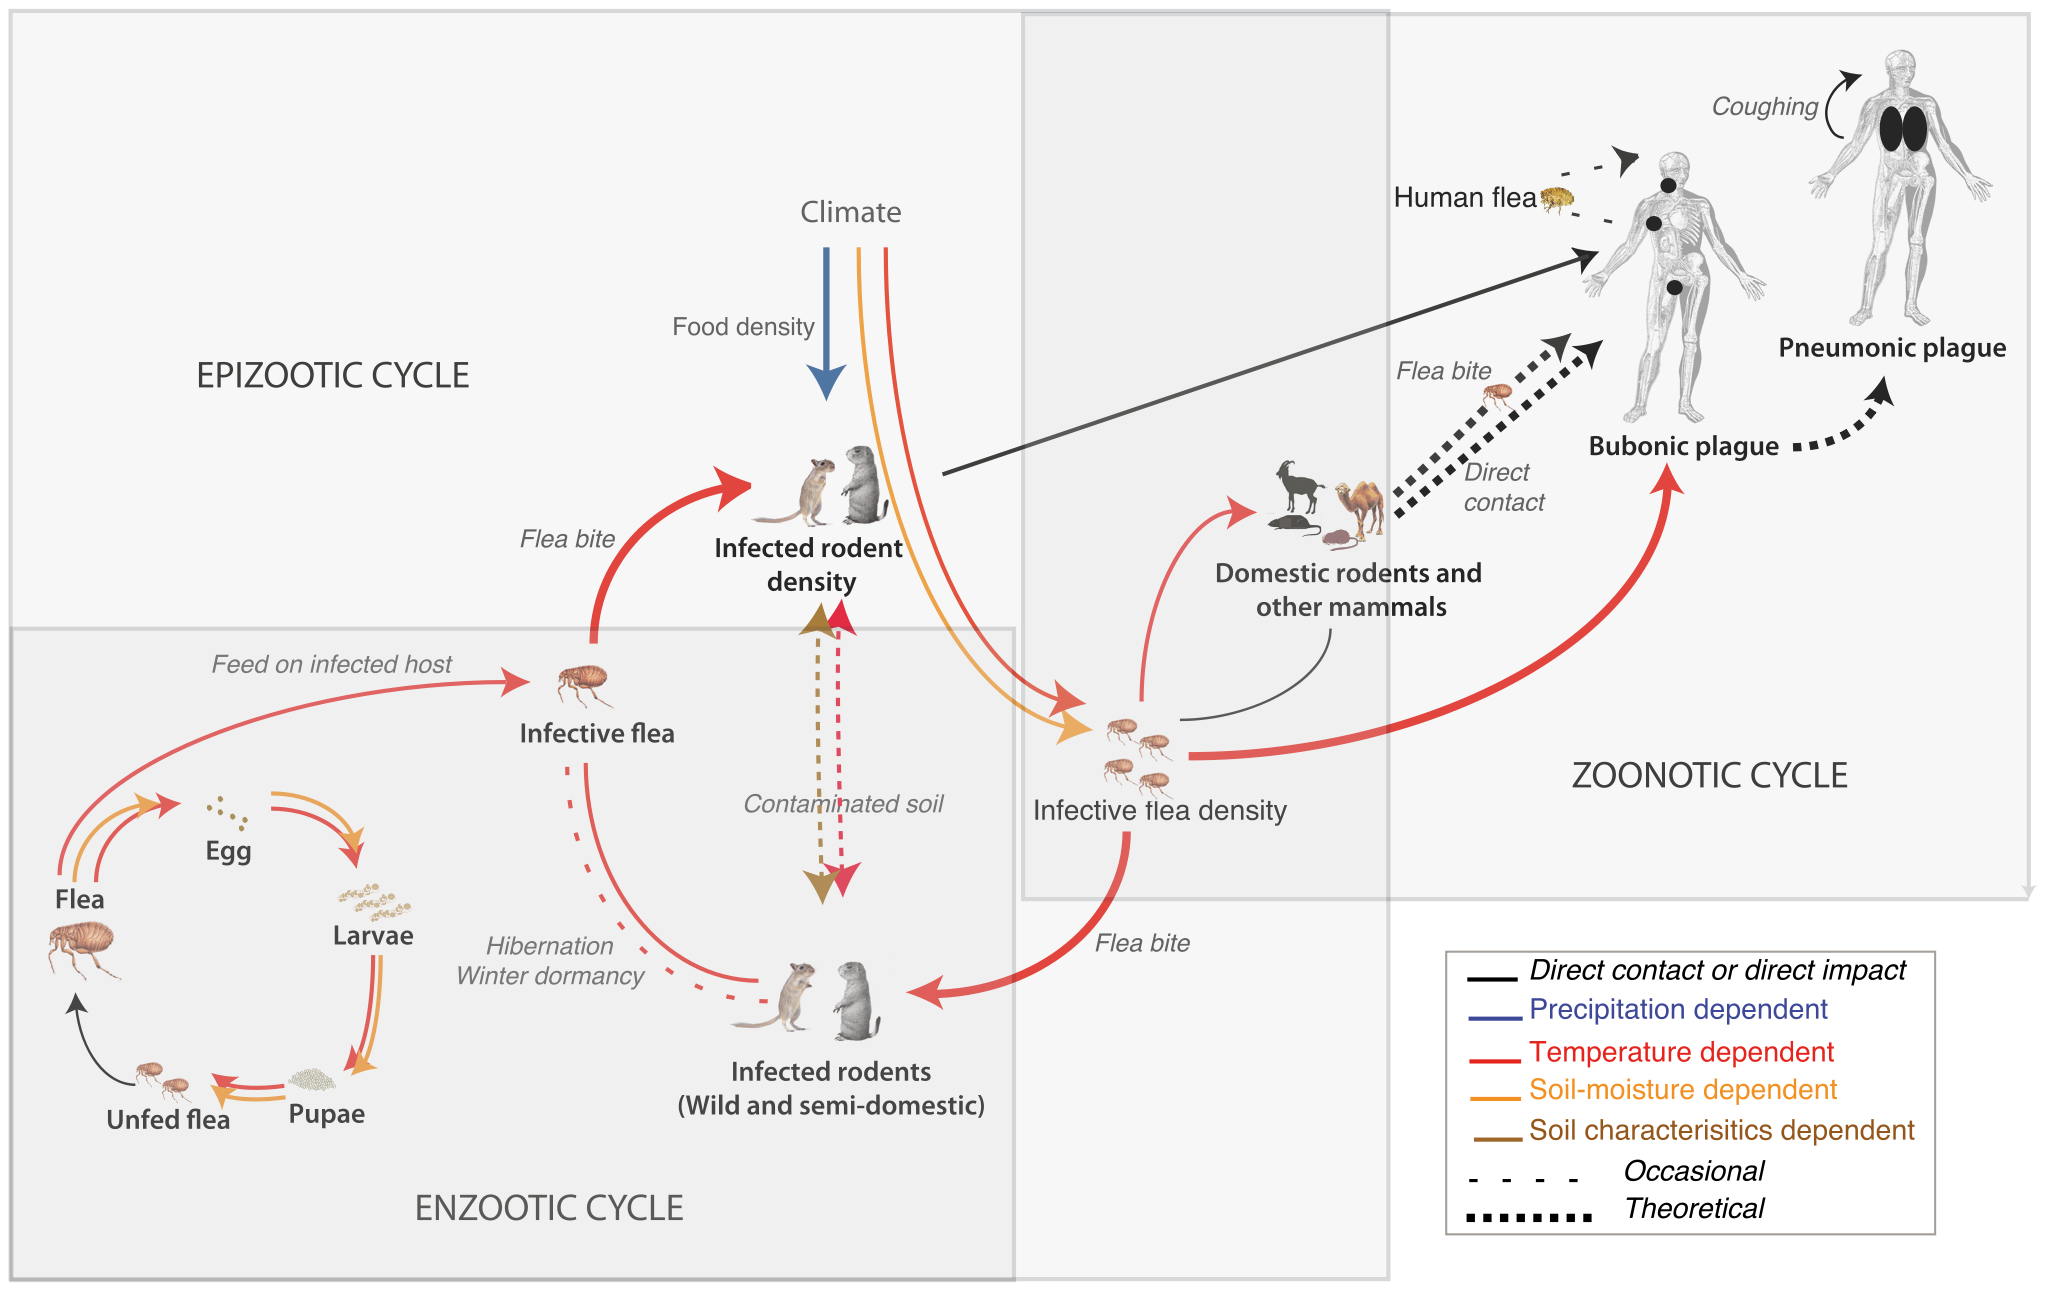 Schematic of the plague cycle with small mammals as hosts and fleas as vectors.